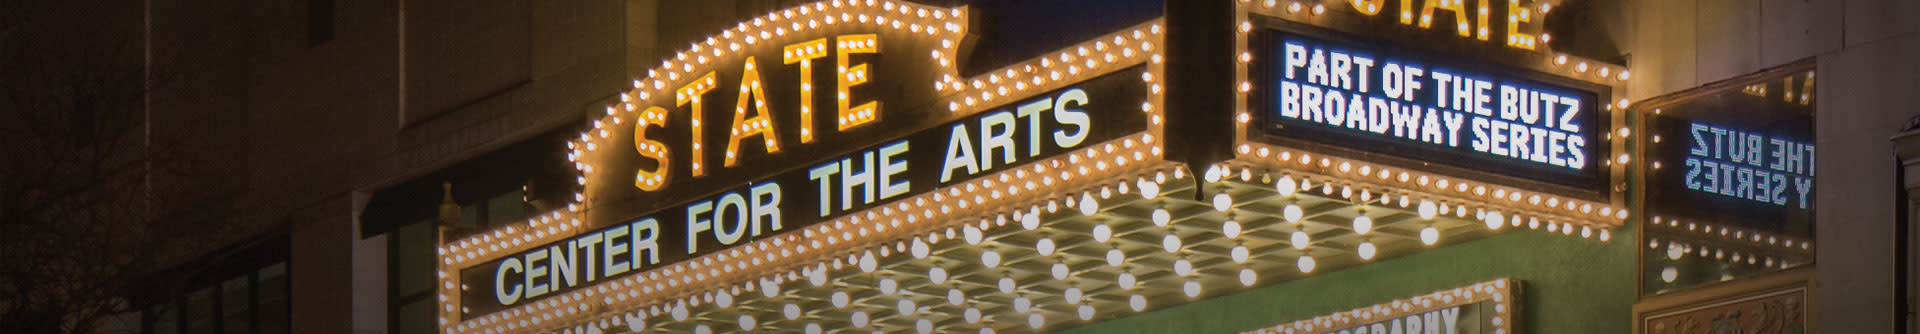 State Theatre Meeting Landing Page No Text